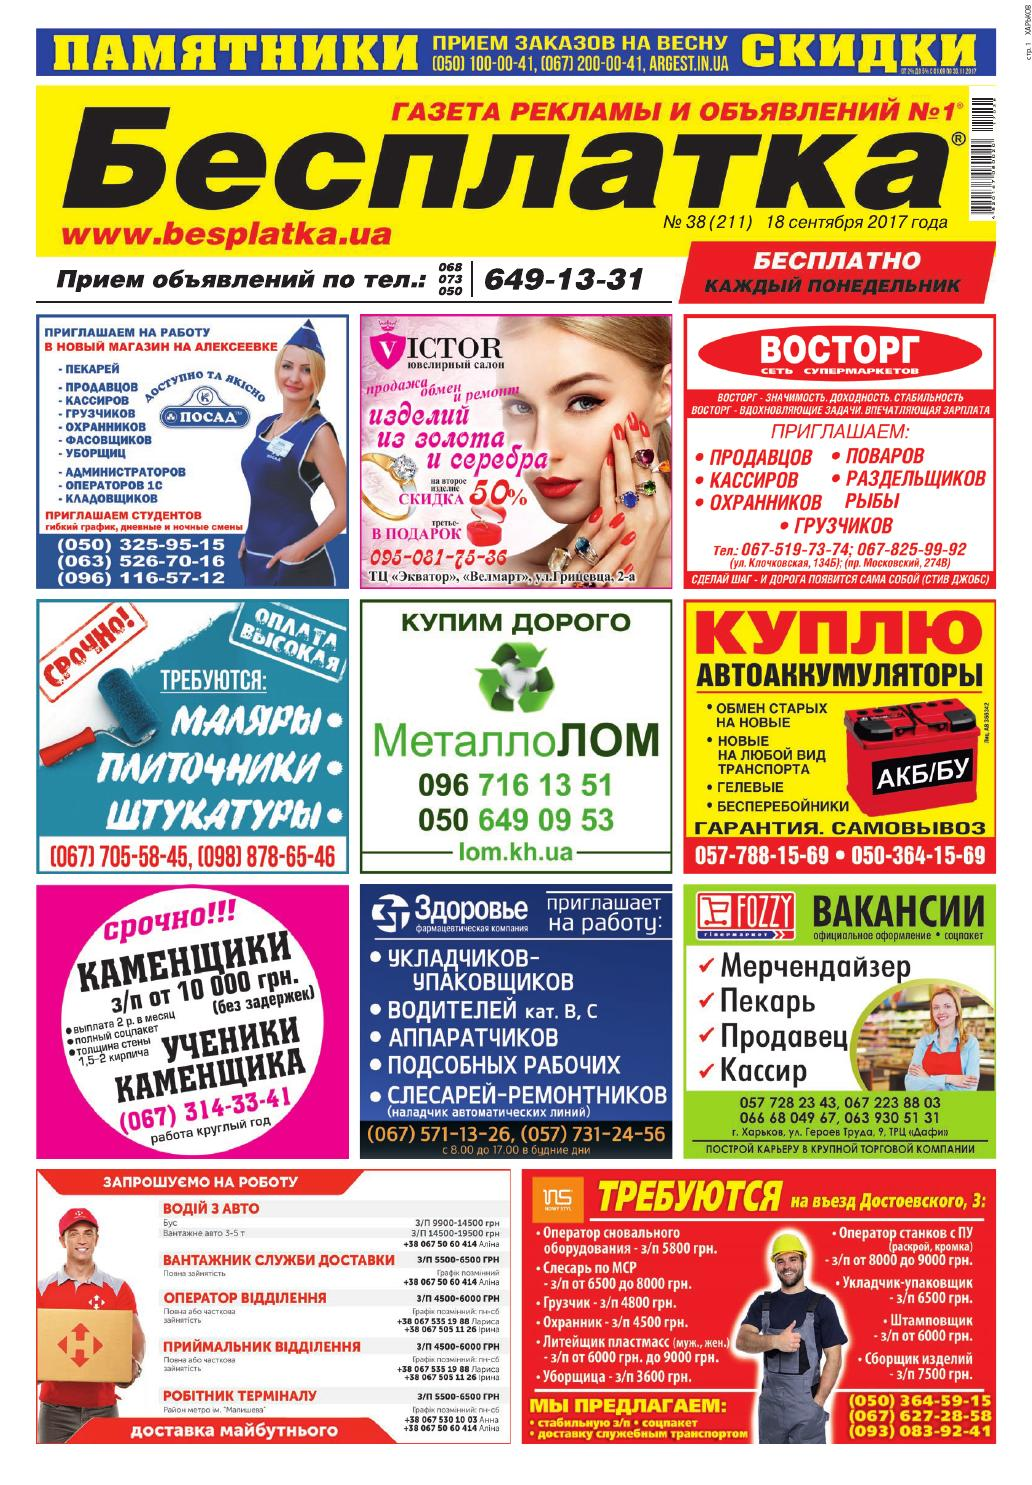 6abf31b5a3db Besplatka  38 Харьков by besplatka ukraine - issuu